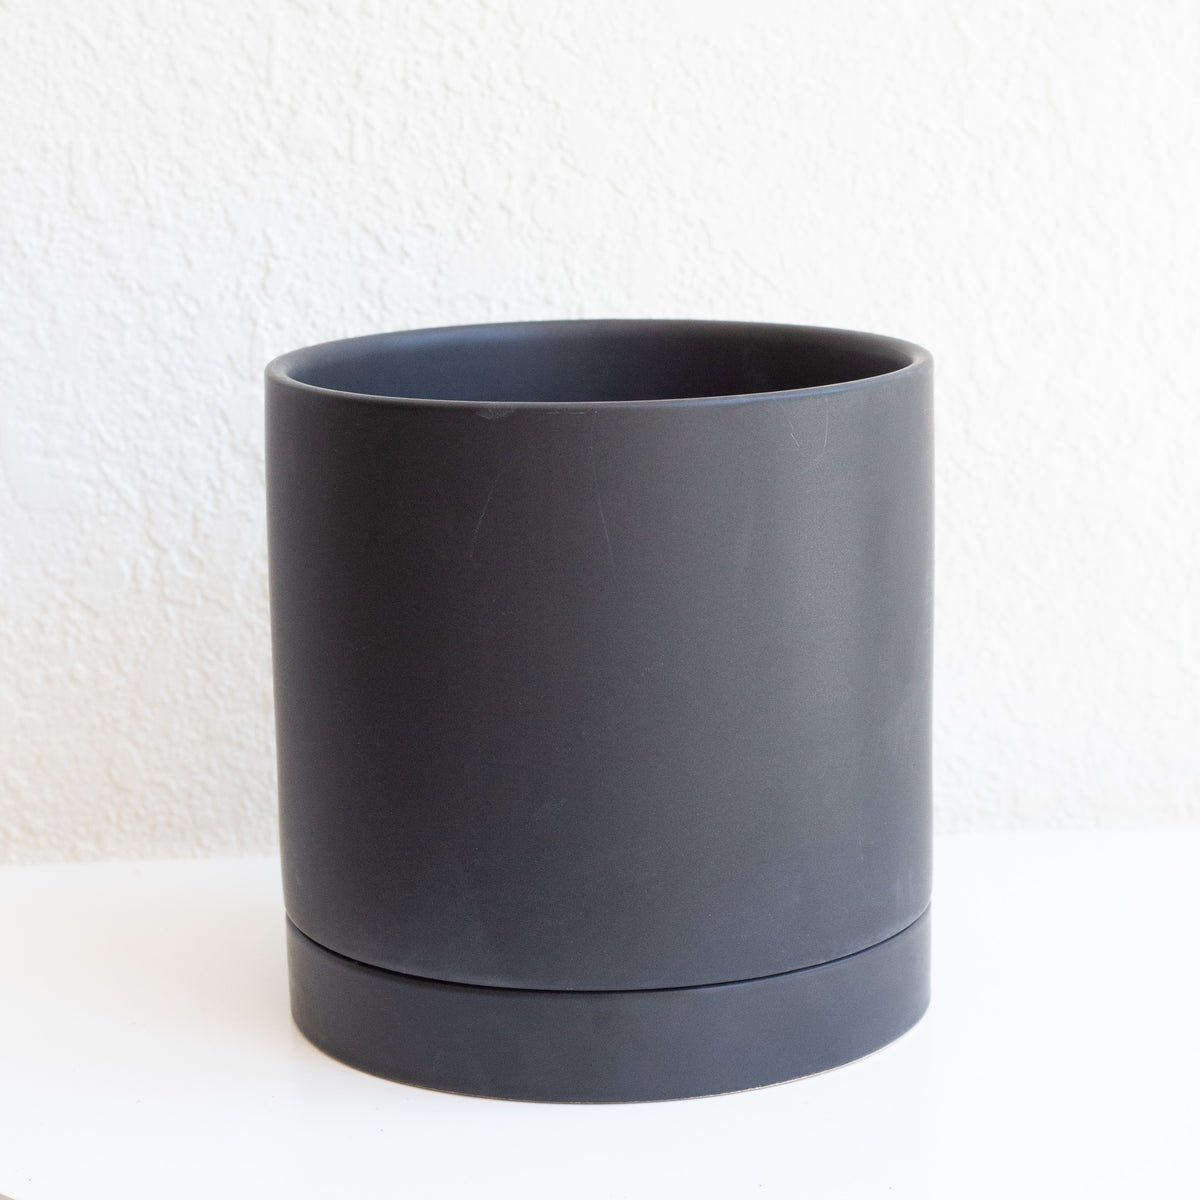 The Perfect Black Pot - Medium